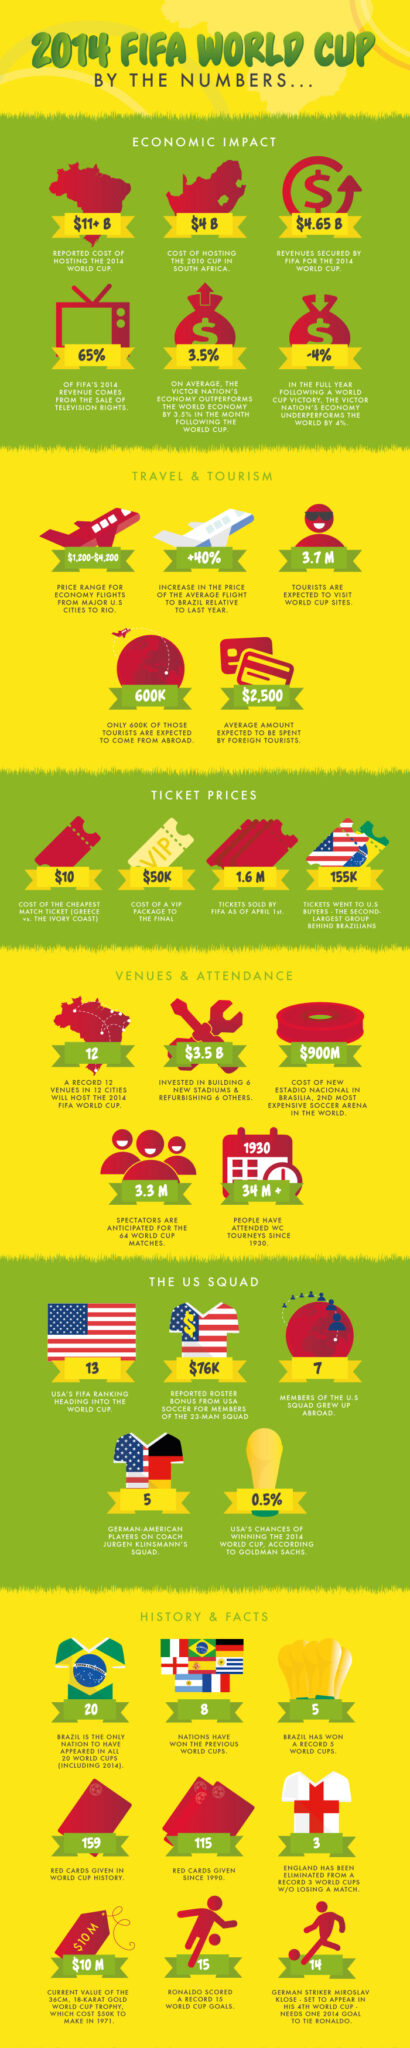 worl cup infographic